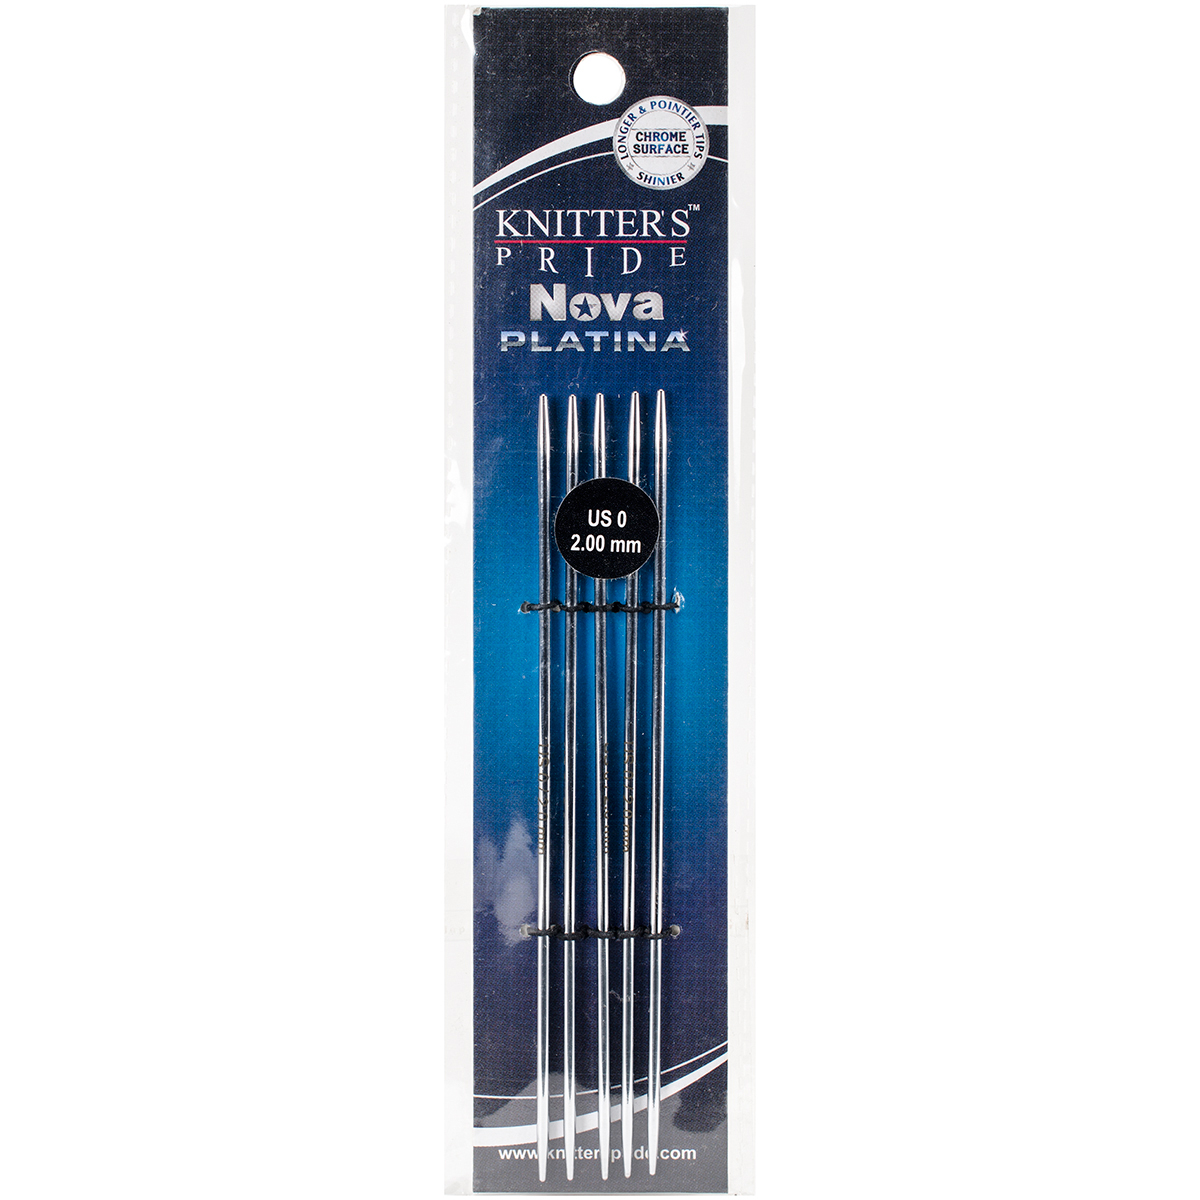 Nova Platina Double Pointed Needles 5-Size 0/2mm